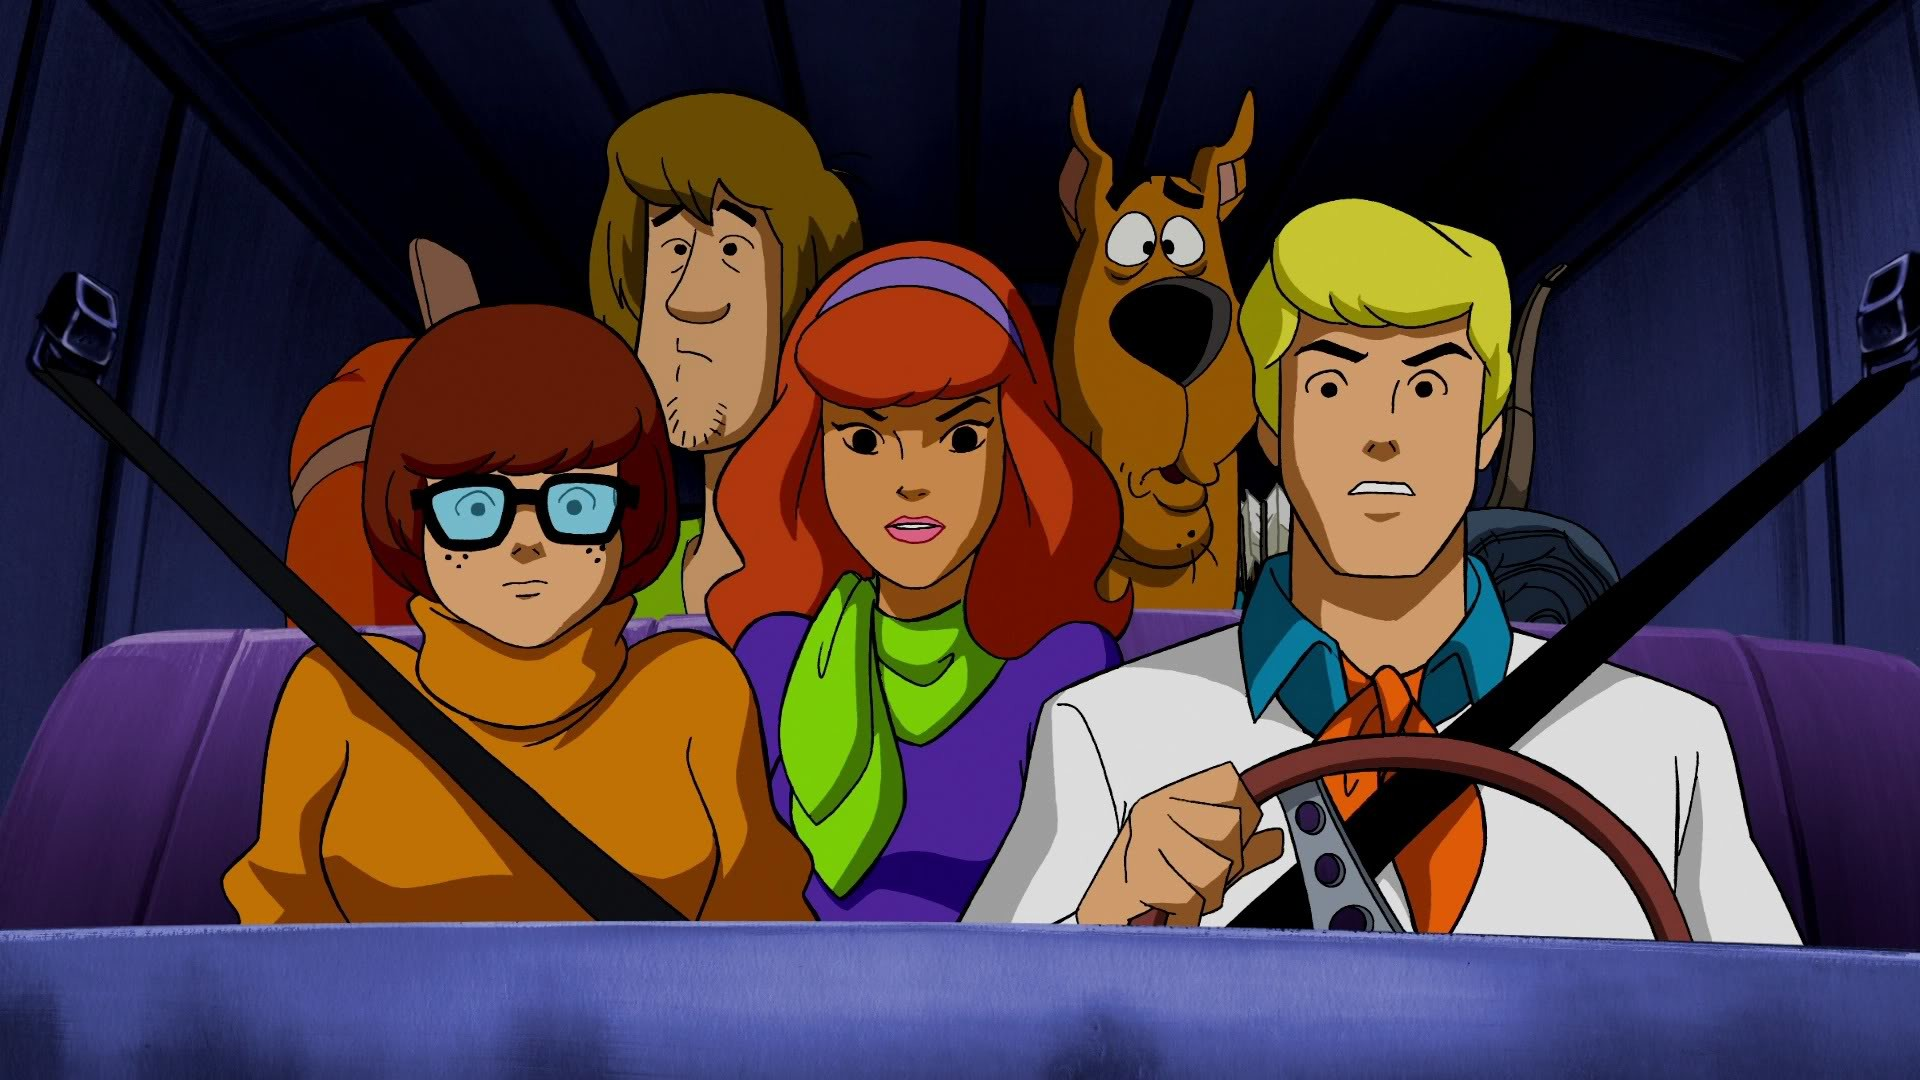 1920x1080 Scooby-Doo HD Wallpaper | Background Image |  | ID:443812 -  Wallpaper Abyss